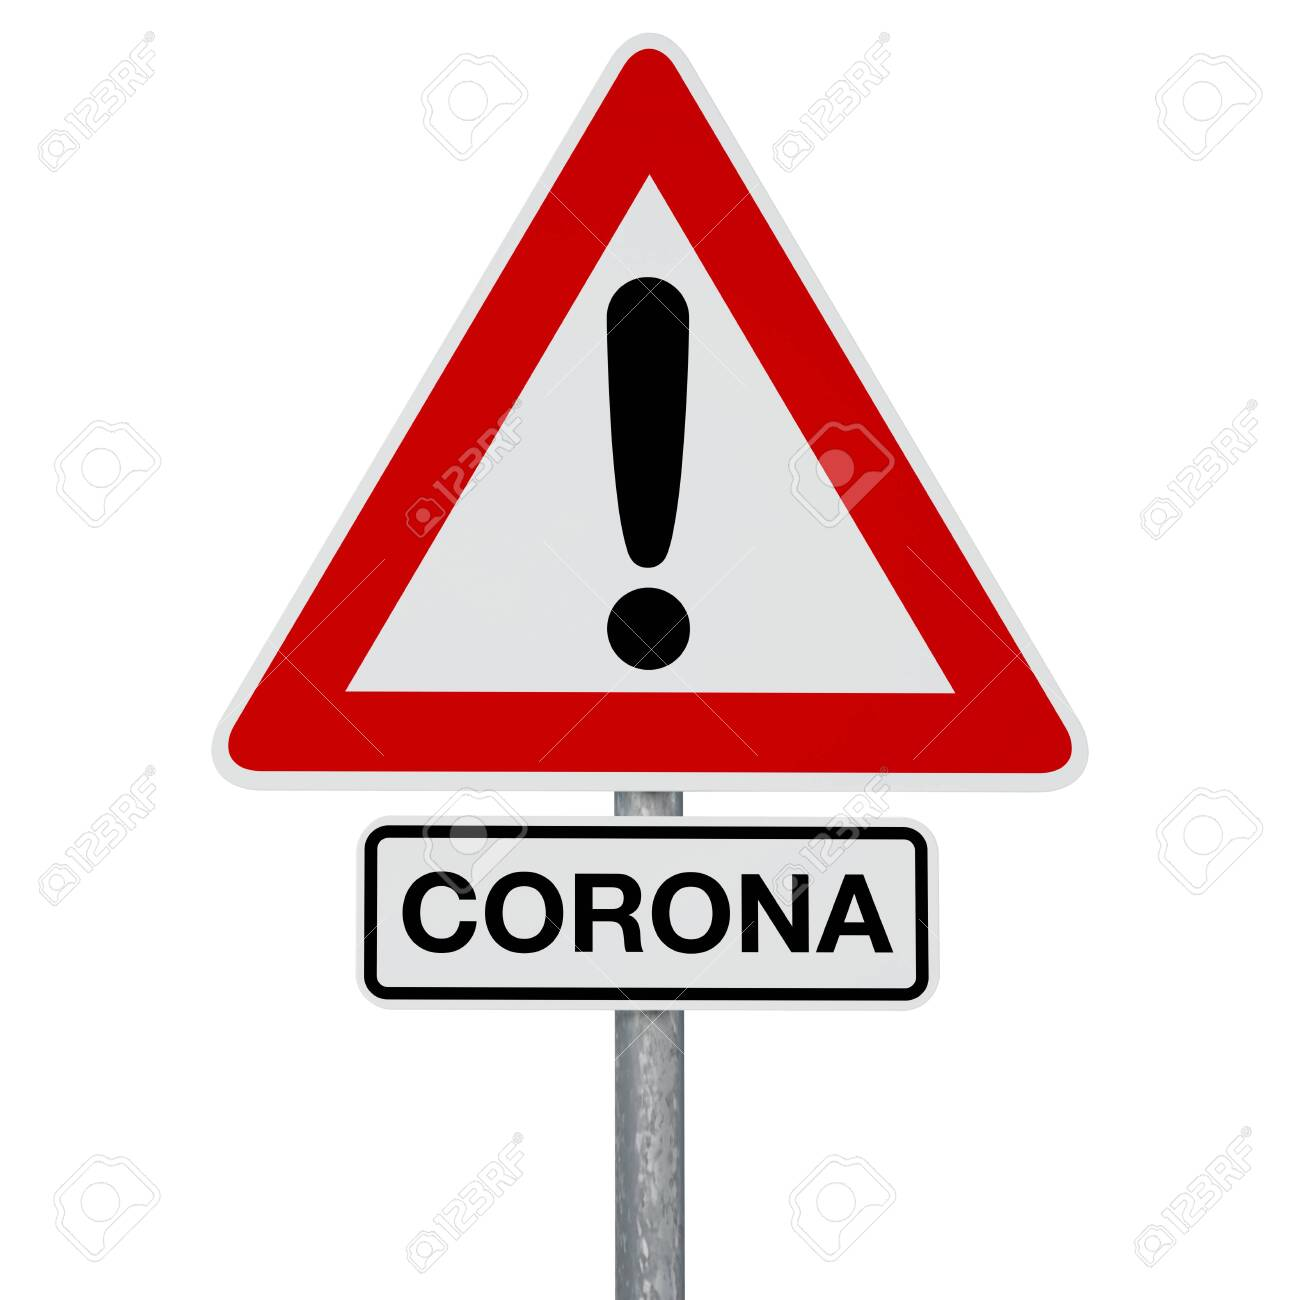 A traffic sign with CORONA additional sign, both attached to the same post. Digitally generated image. A clipping path is included. - 144669081